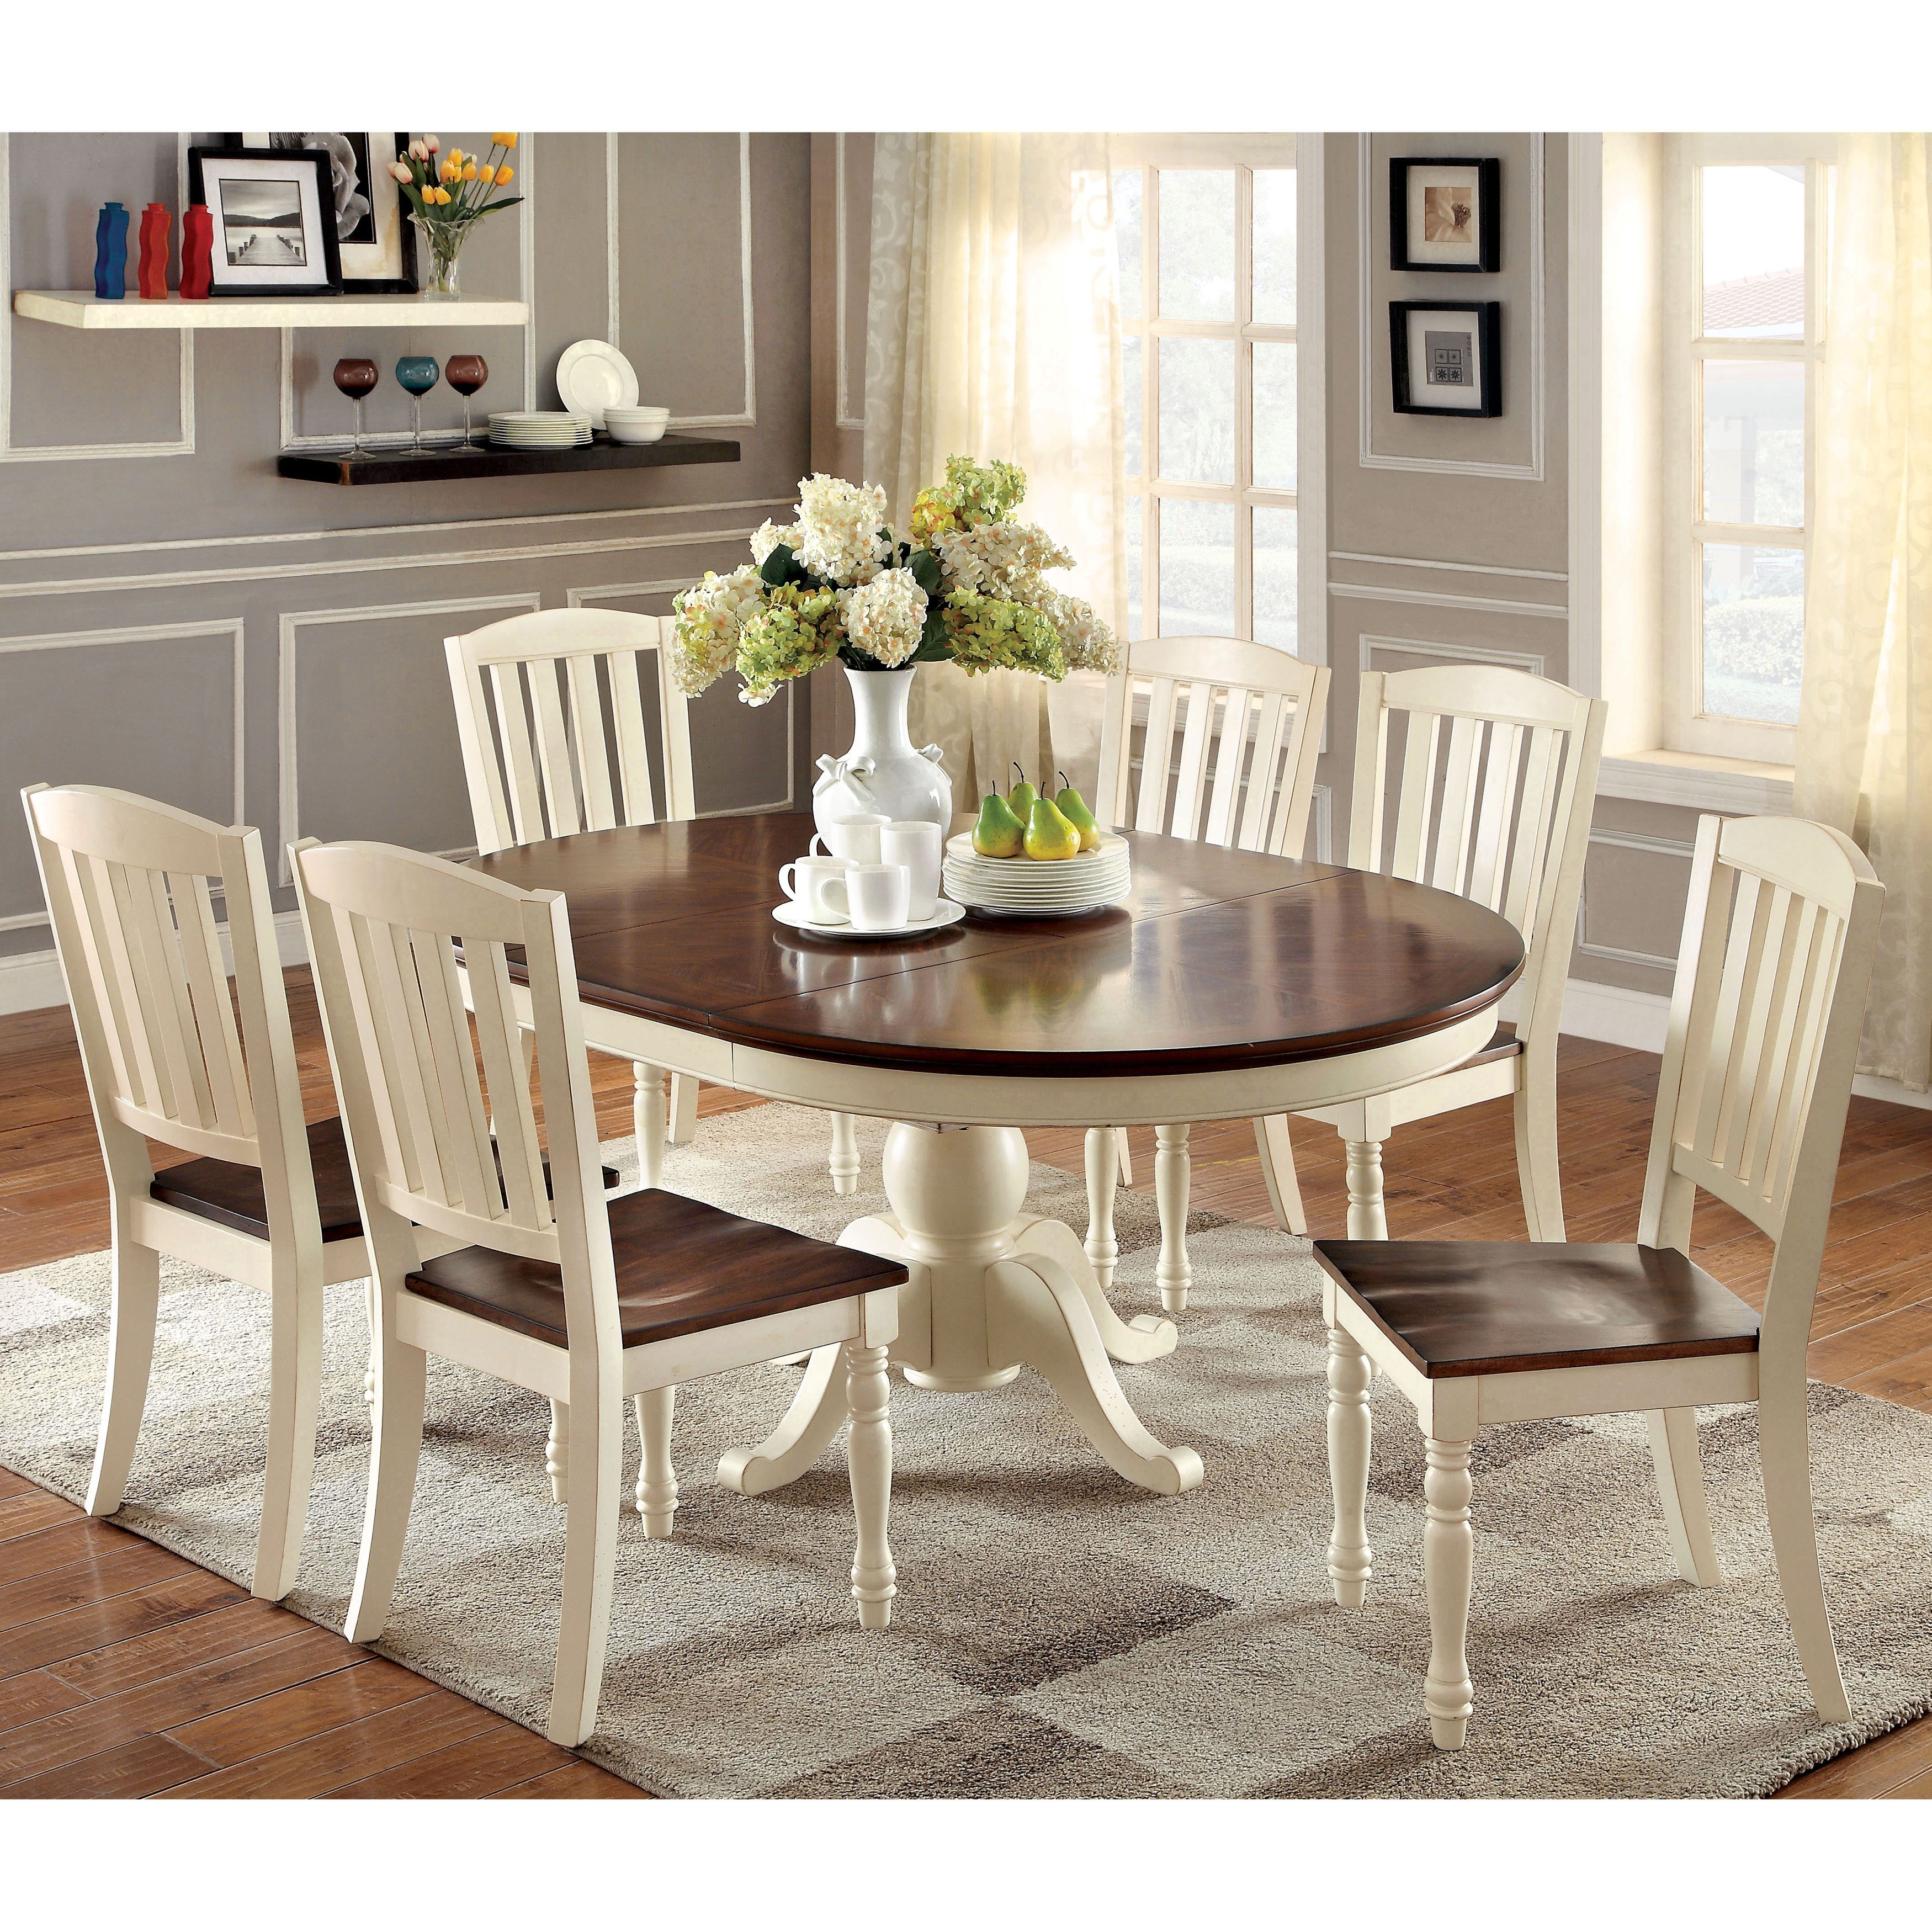 grey kitchen chairs Furniture of America Bethannie Cottage Style 2 Tone Oval Dining Table by Furniture of America